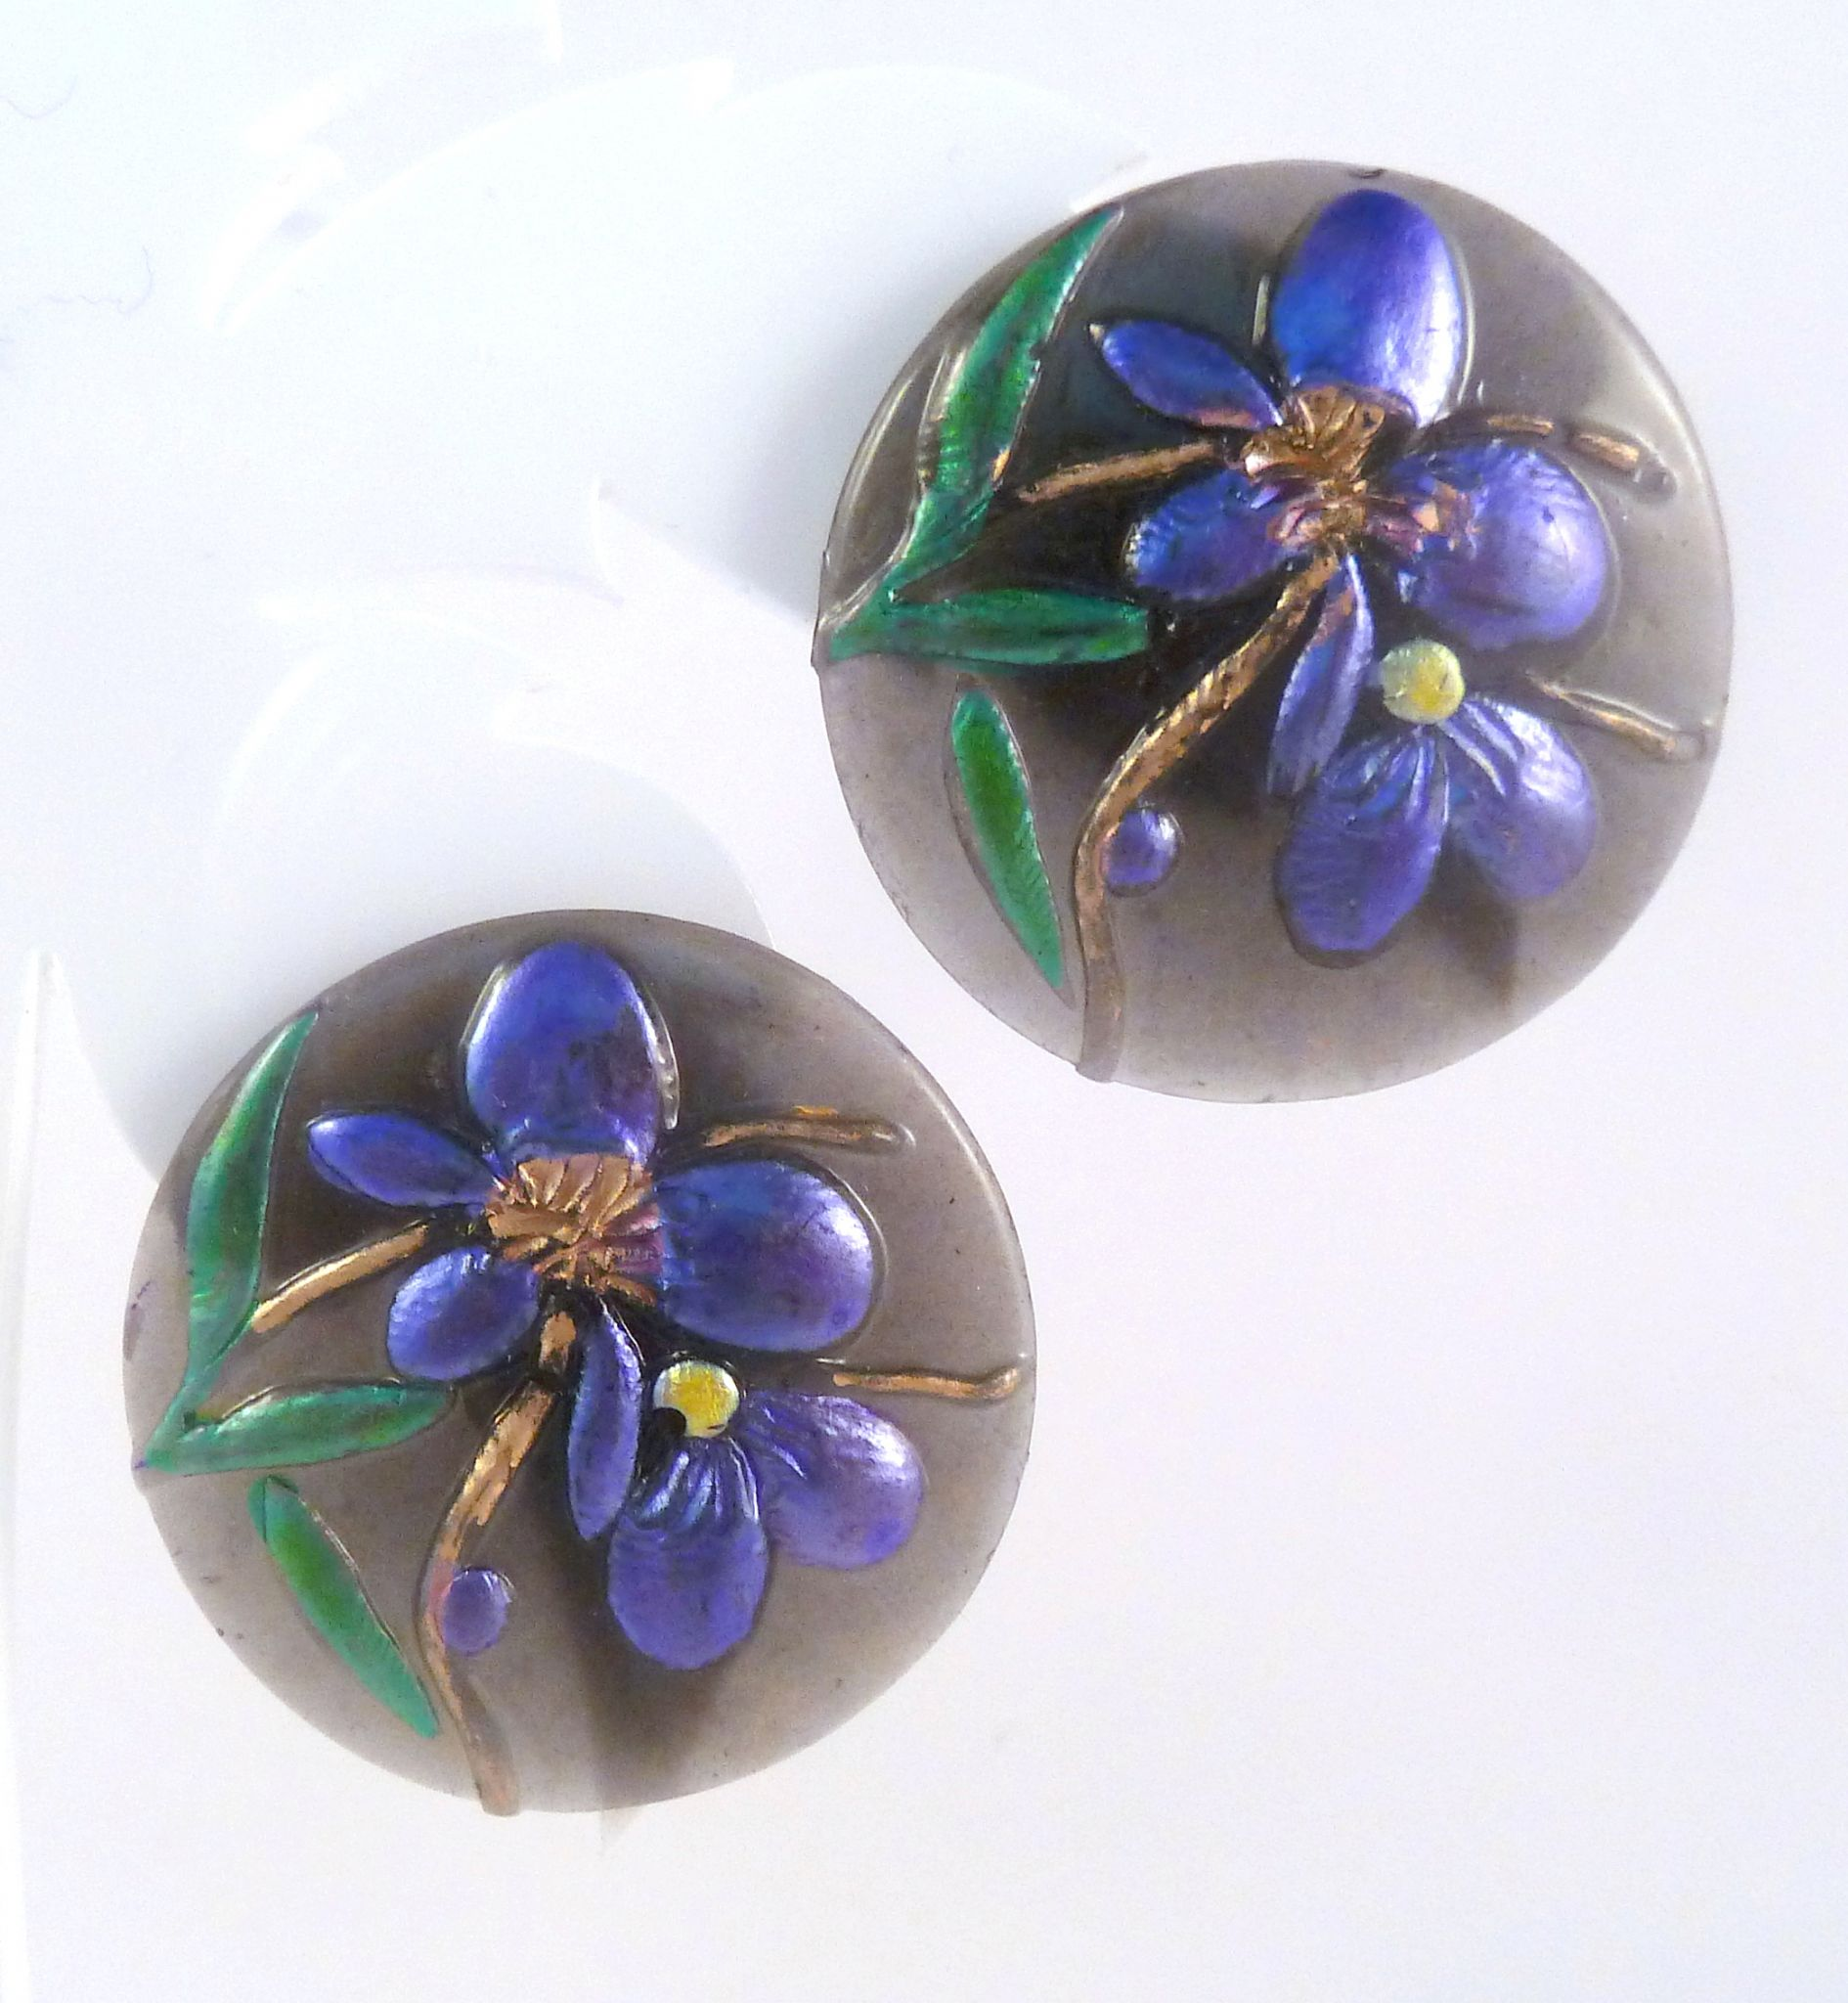 earrings make do fullxfull listing kit floral il your purple own earring yourself vintage dragonfly design it jewelry flower